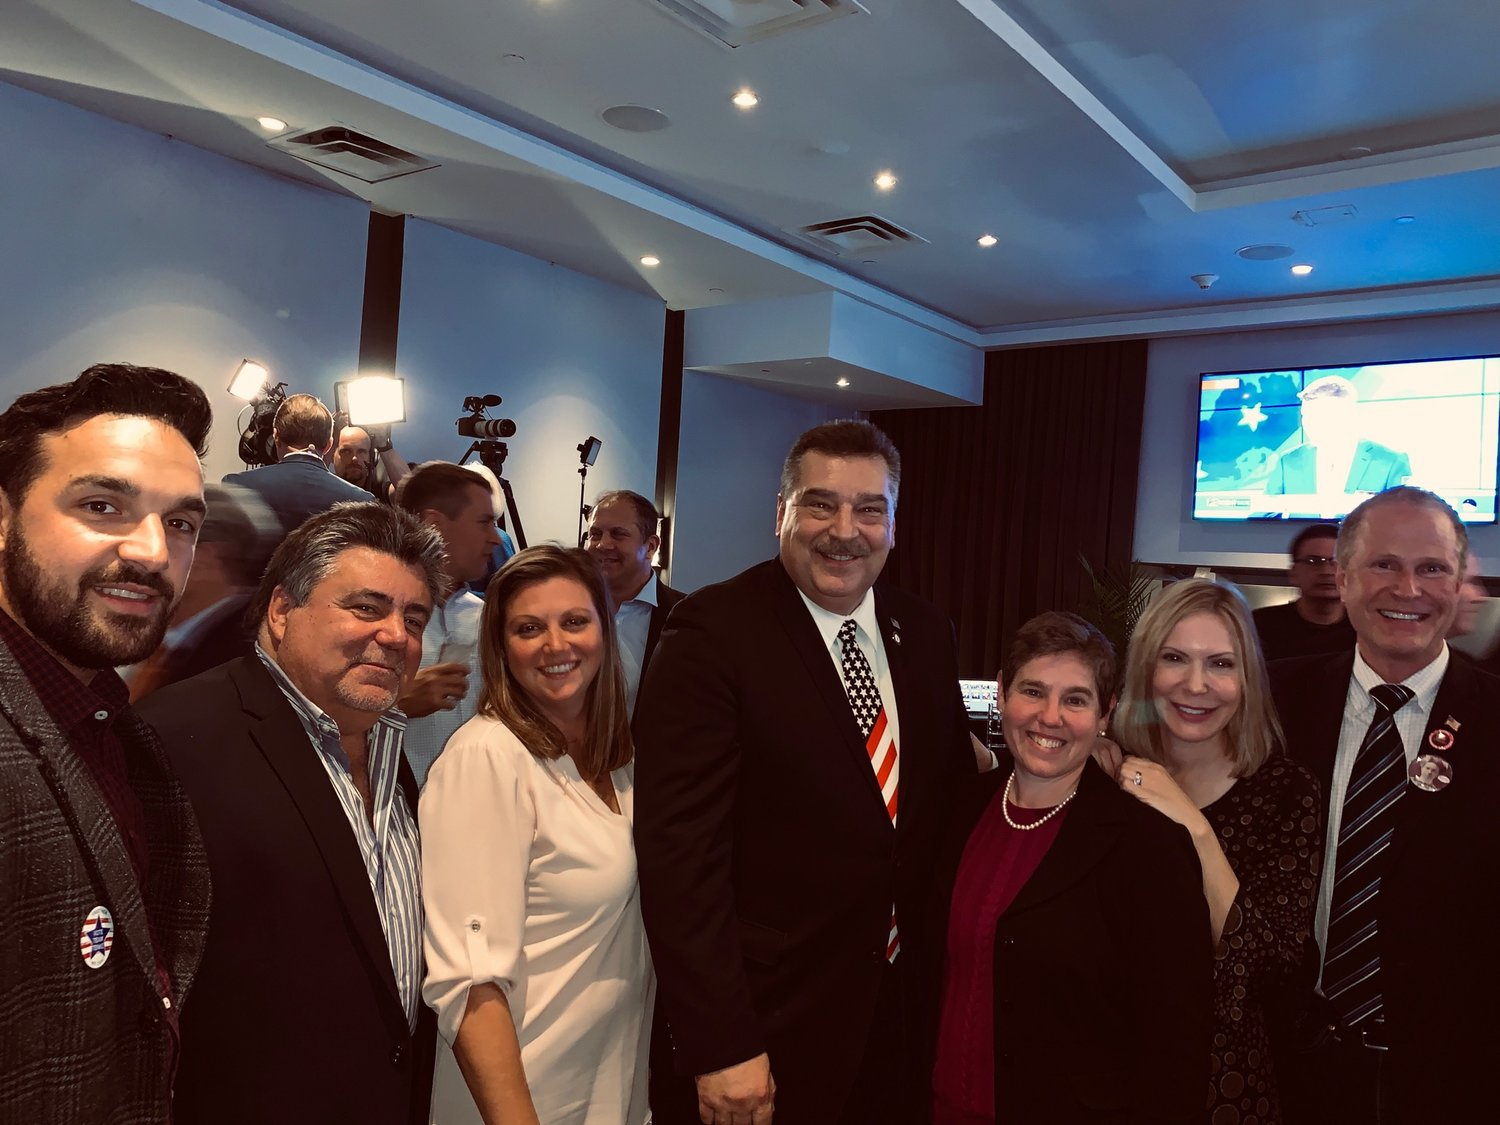 Geln Cove Democrats, from left, Rocco Totino, John Perrone, Danielle Fugazy Scagliola, Timothy Tenke, Marsha Silverman, Eve Lupenko Ferrante and Gaitley Stevenson-Mathews celebrated their victory.